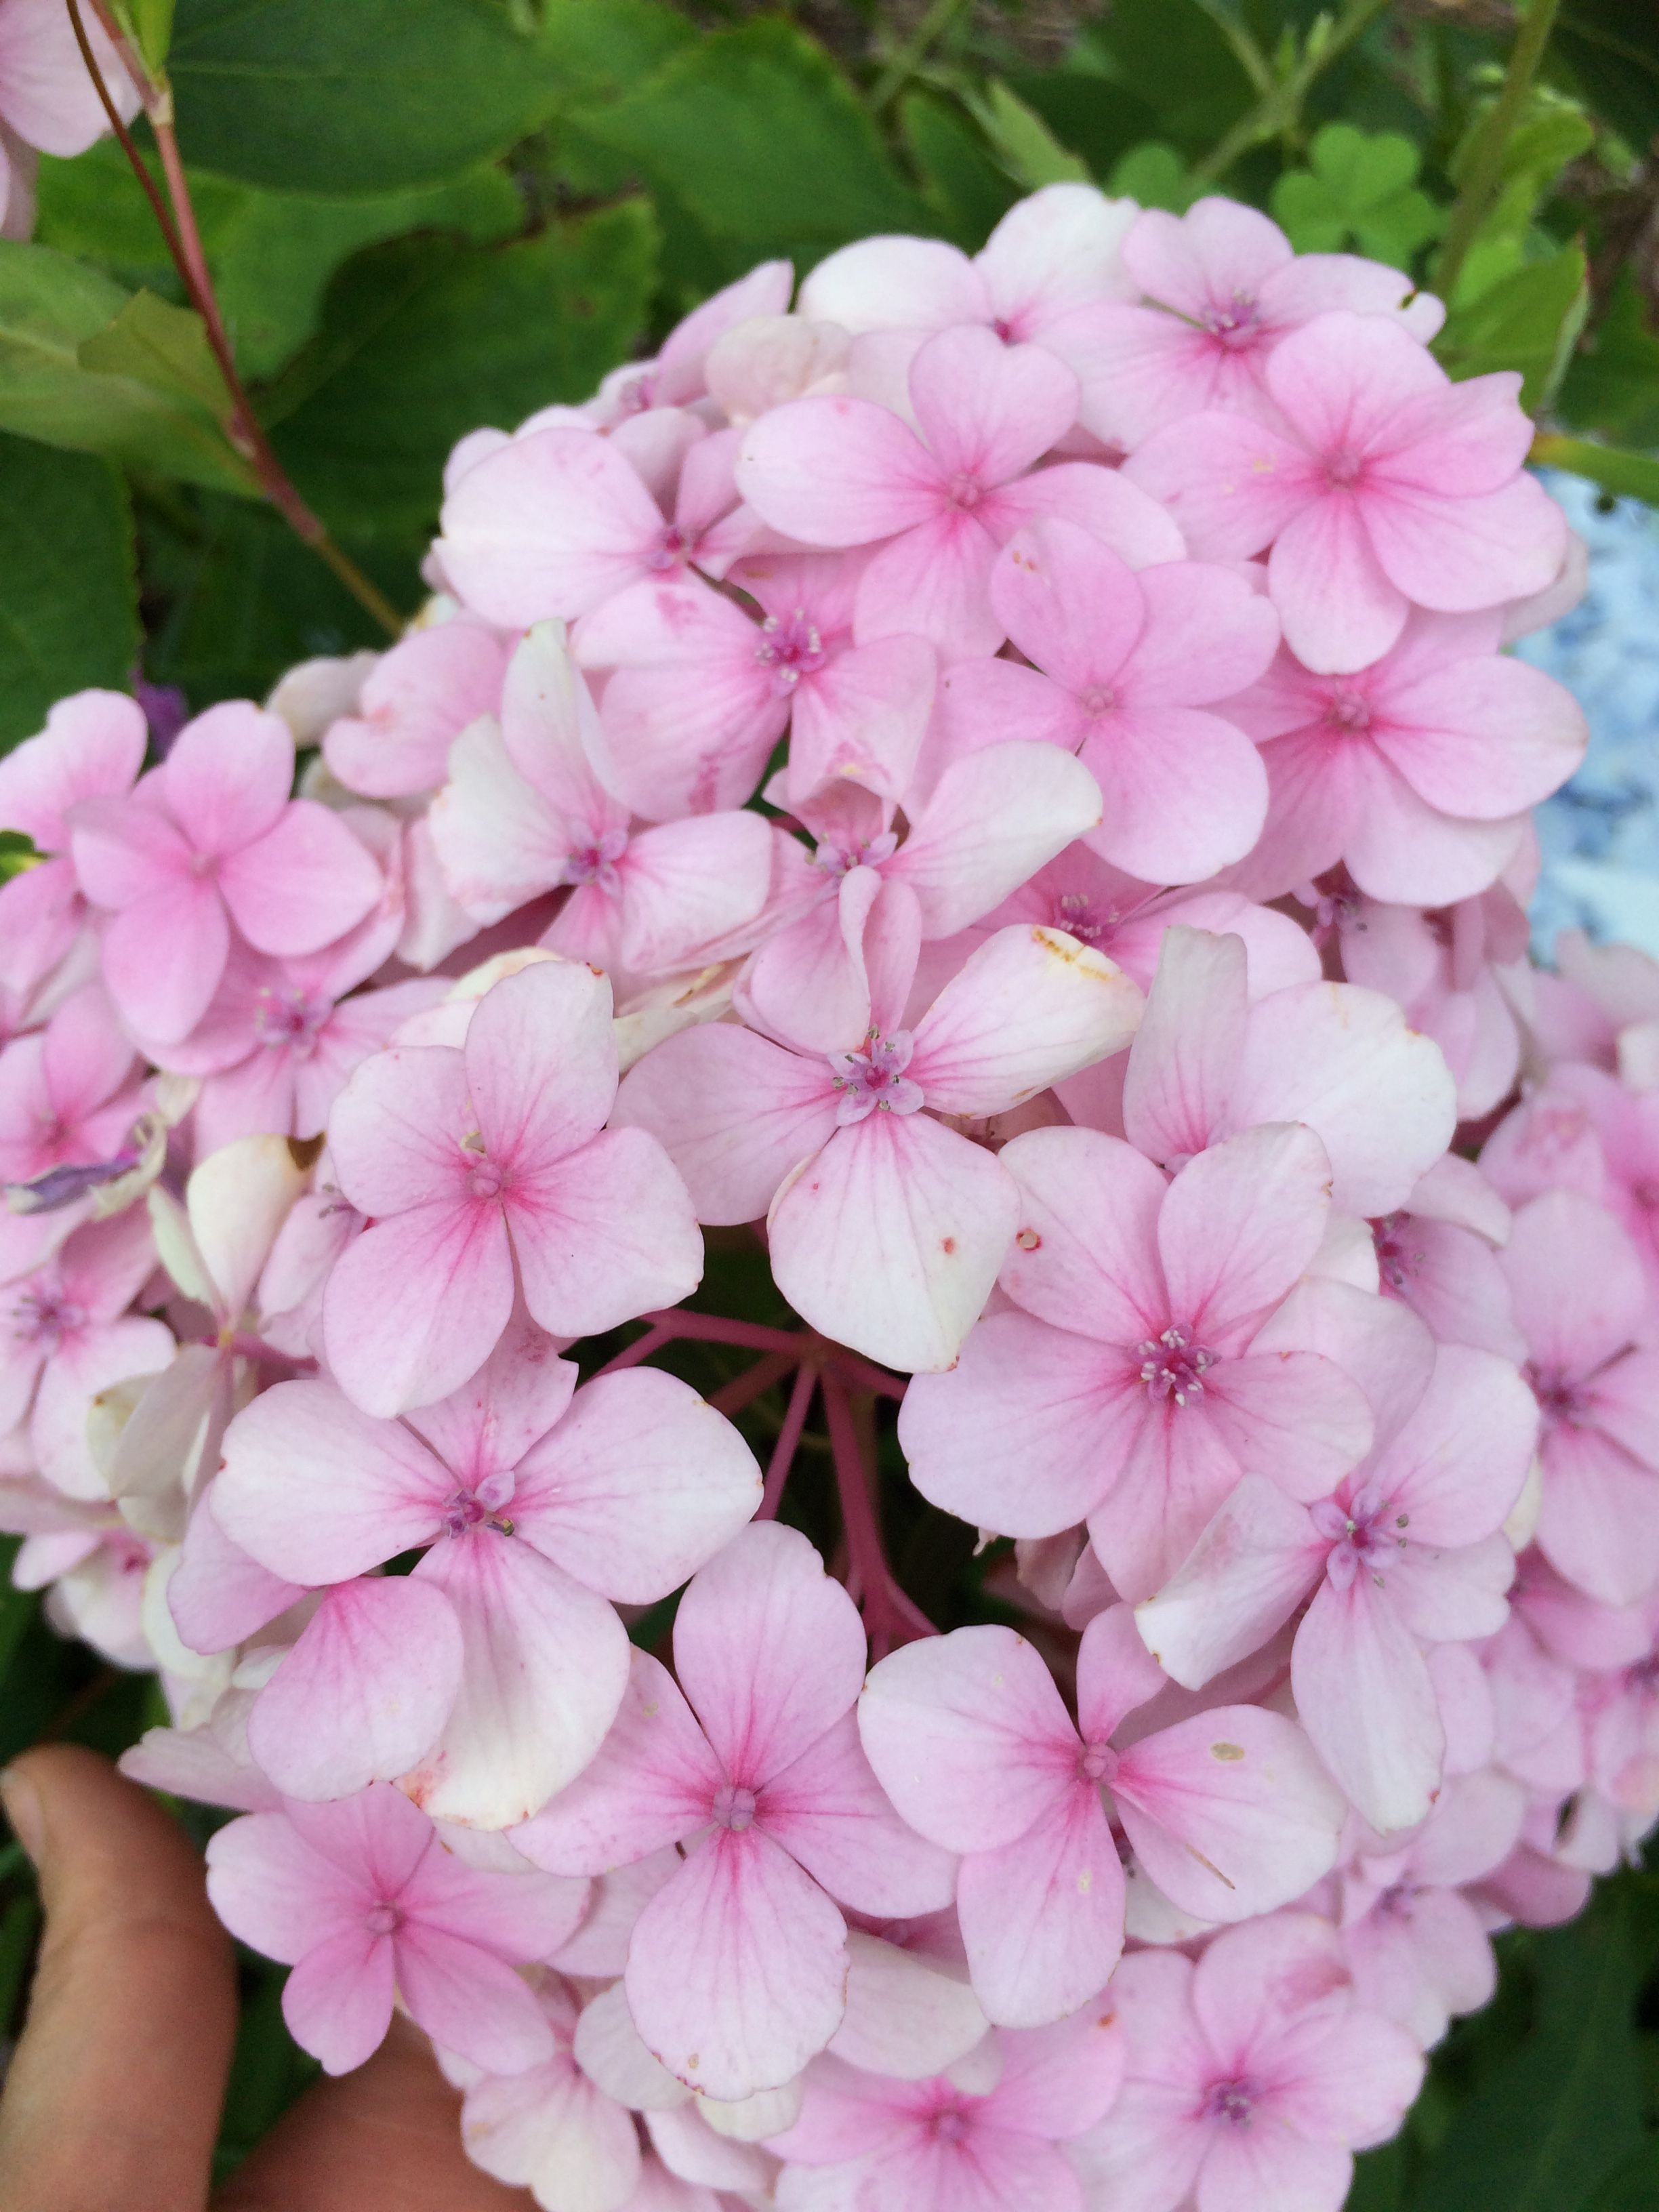 Mini Penny 2 3 Ft Tall 3 4 Ft Wide Blooms On Old Wood Mildew Resistant Hydrangea Monrovia Plant Catalogs Hydrangea